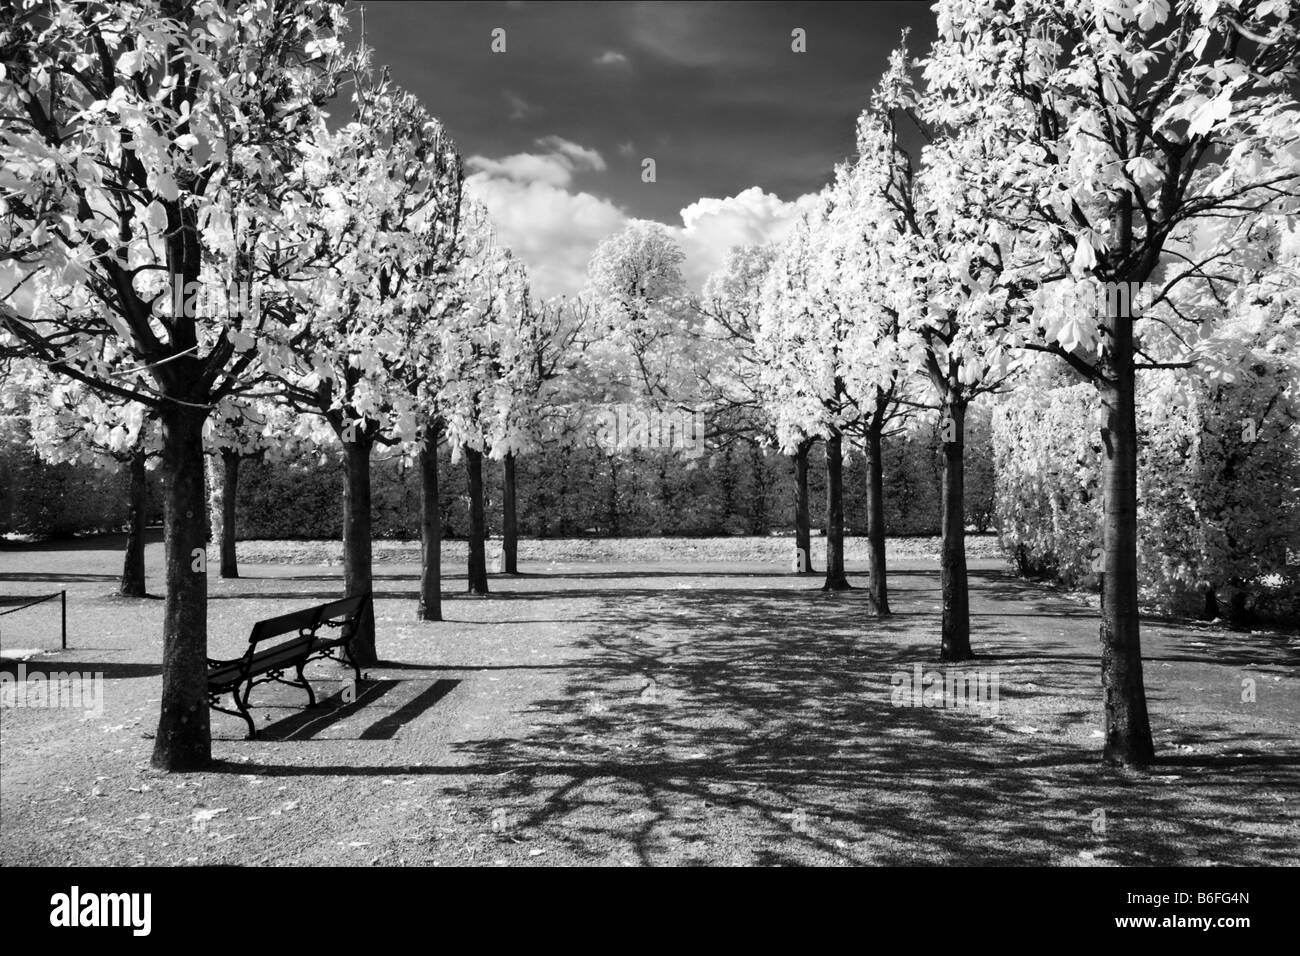 Schoenbrunn Palace gardens, infra-red black and white photograph, Vienna, Austria, Europe - Stock Image